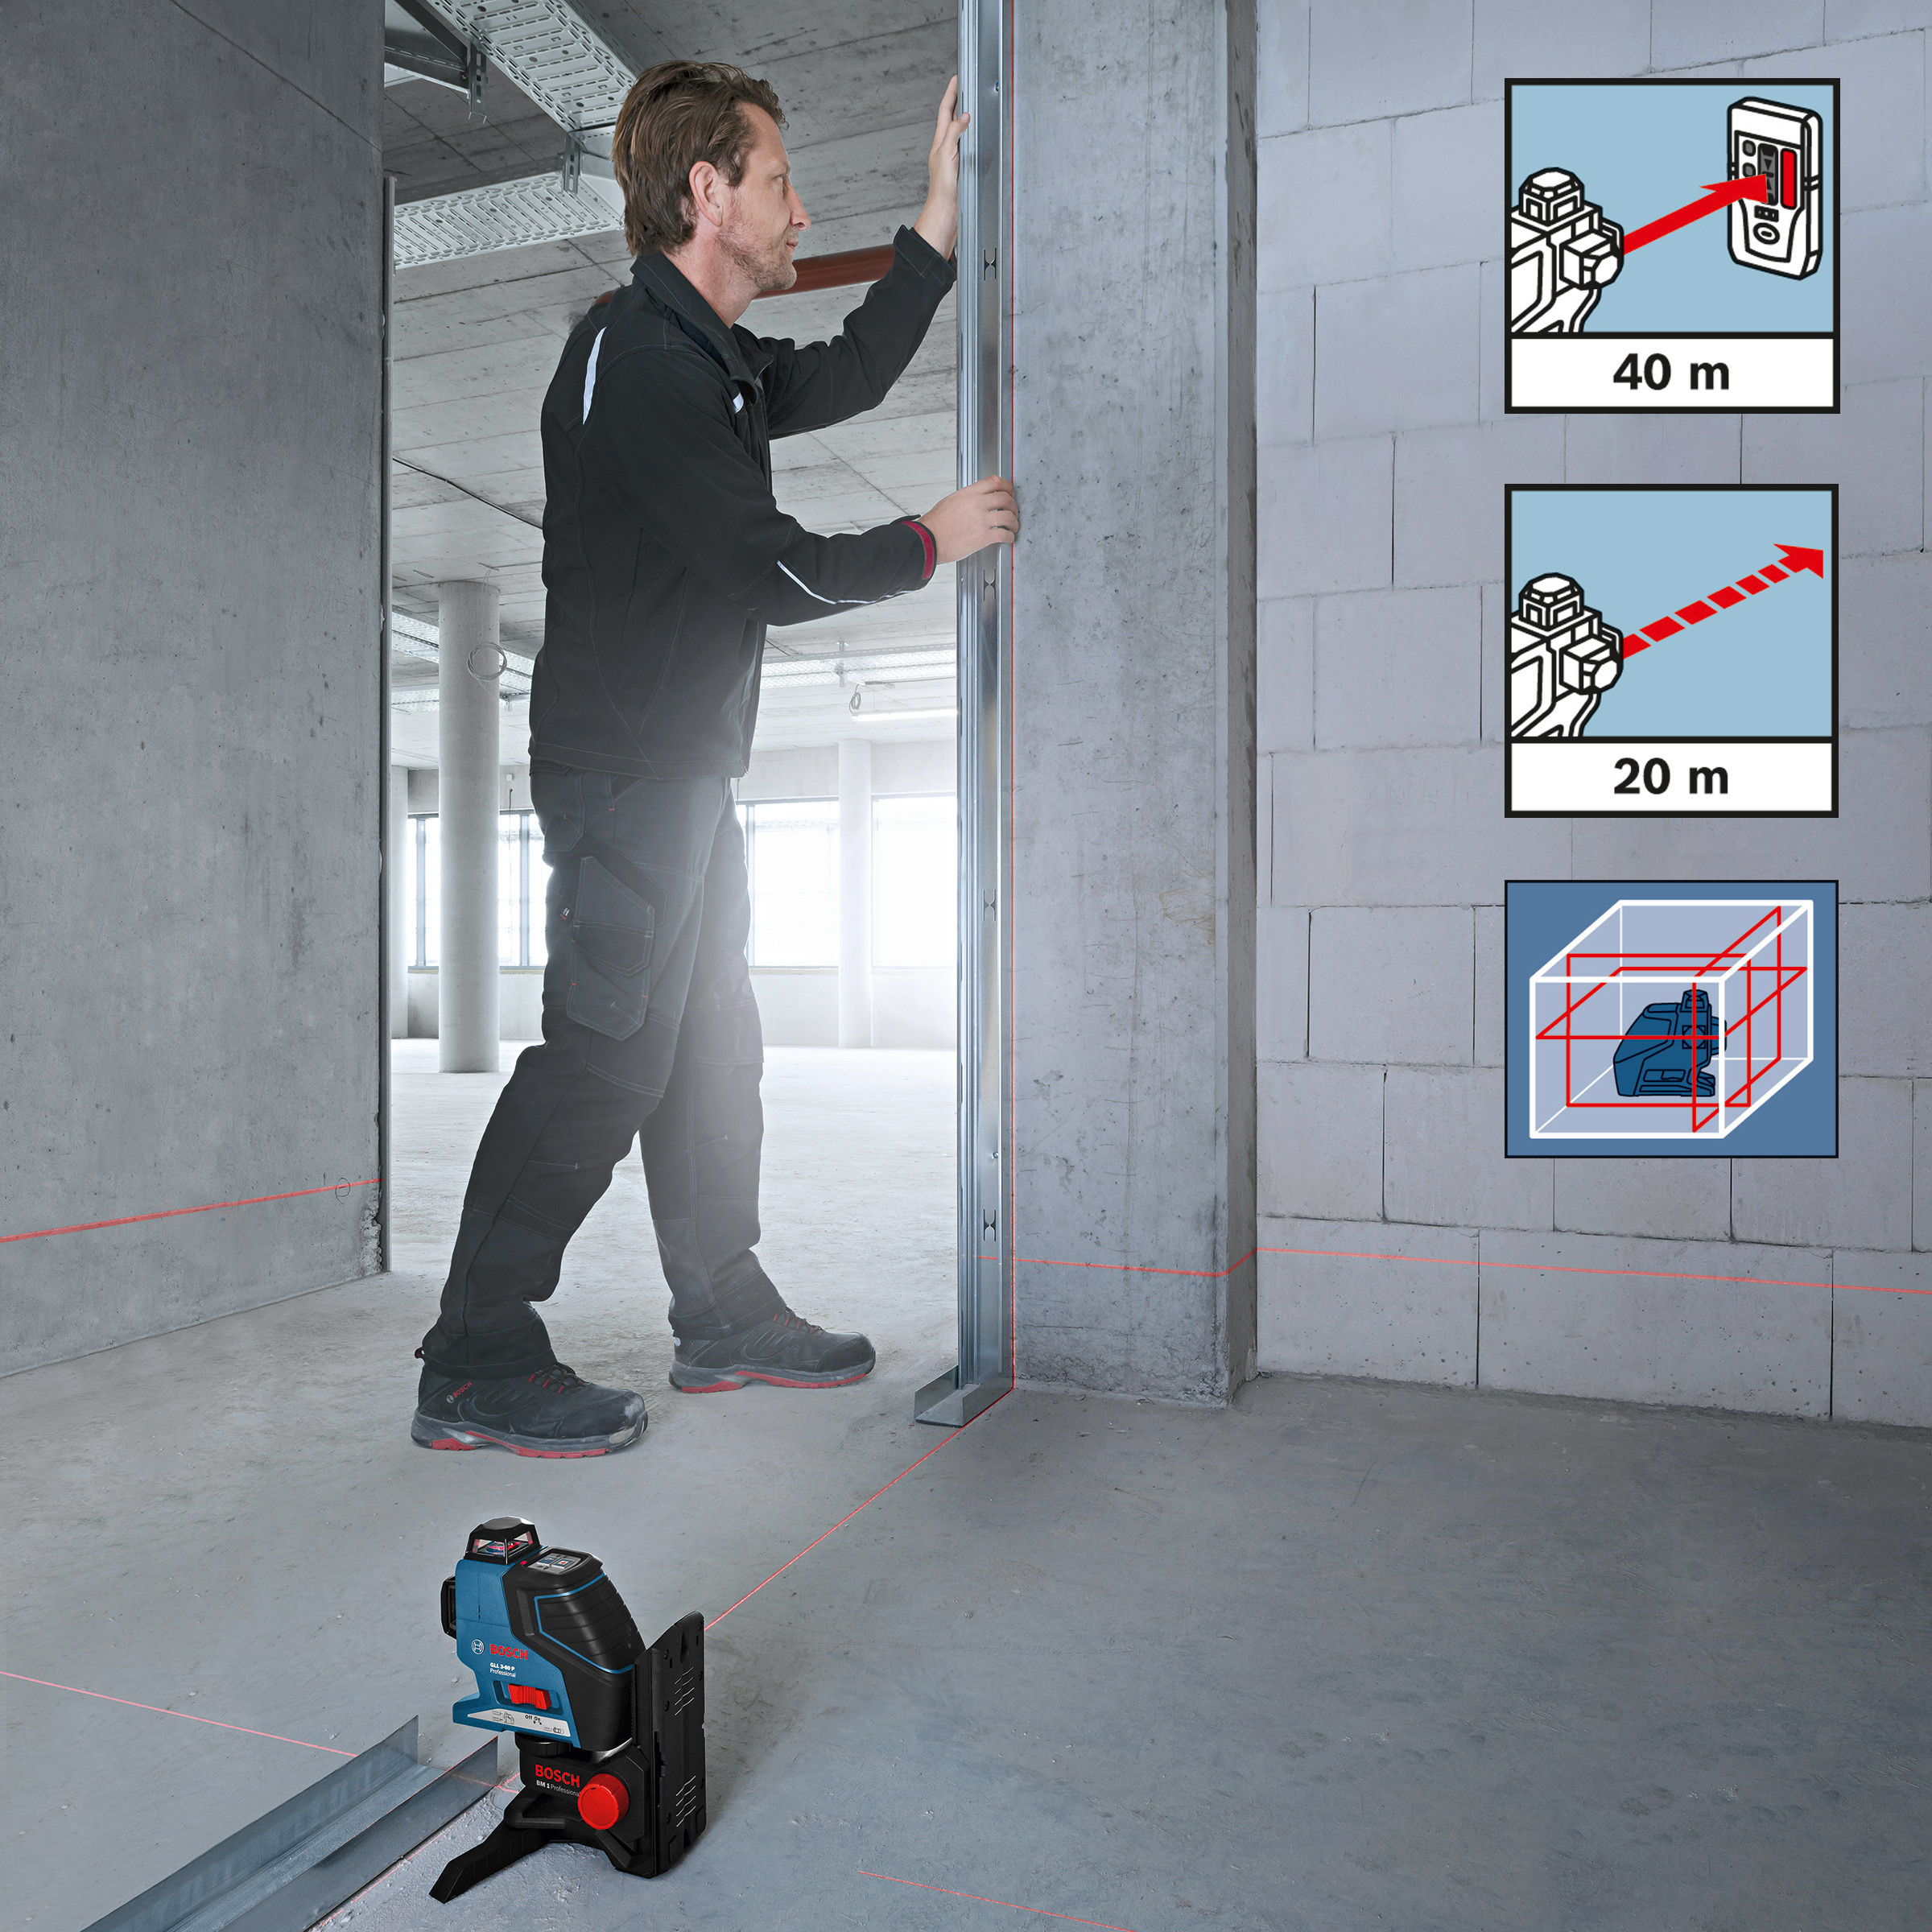 Toolstop Bosch Gll3 80p 360 Degree Vertical And Horizontal Line Gll 3 15 Laser Level Mini Bm 1 Wall Mount